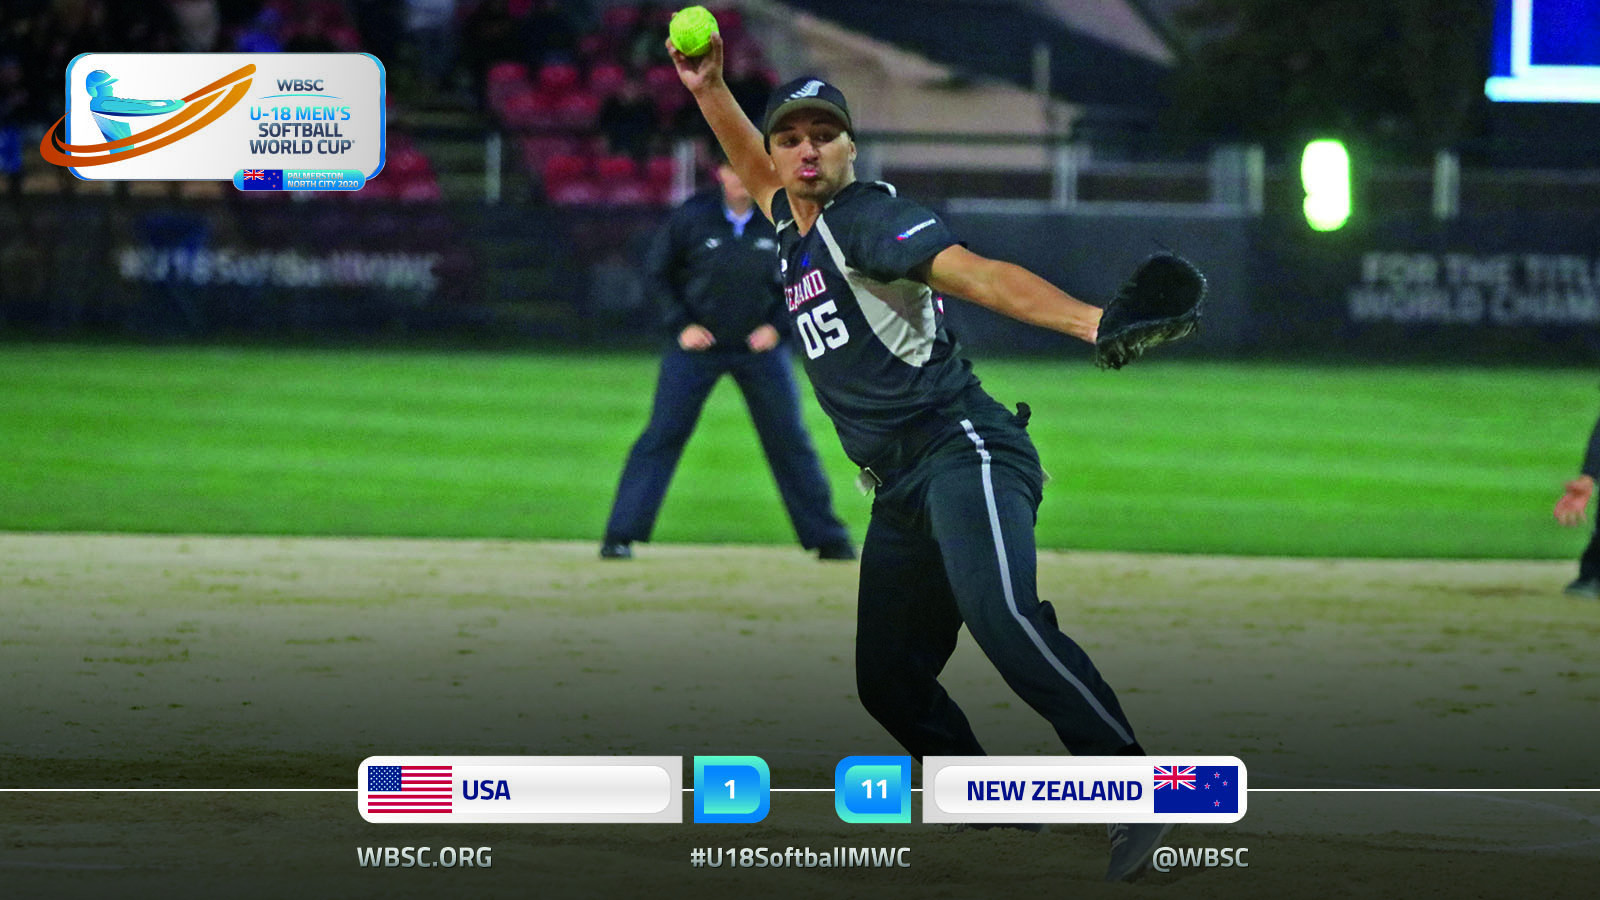 Hosts New Zealand record first win at Under-18 Men's Softball World Cup